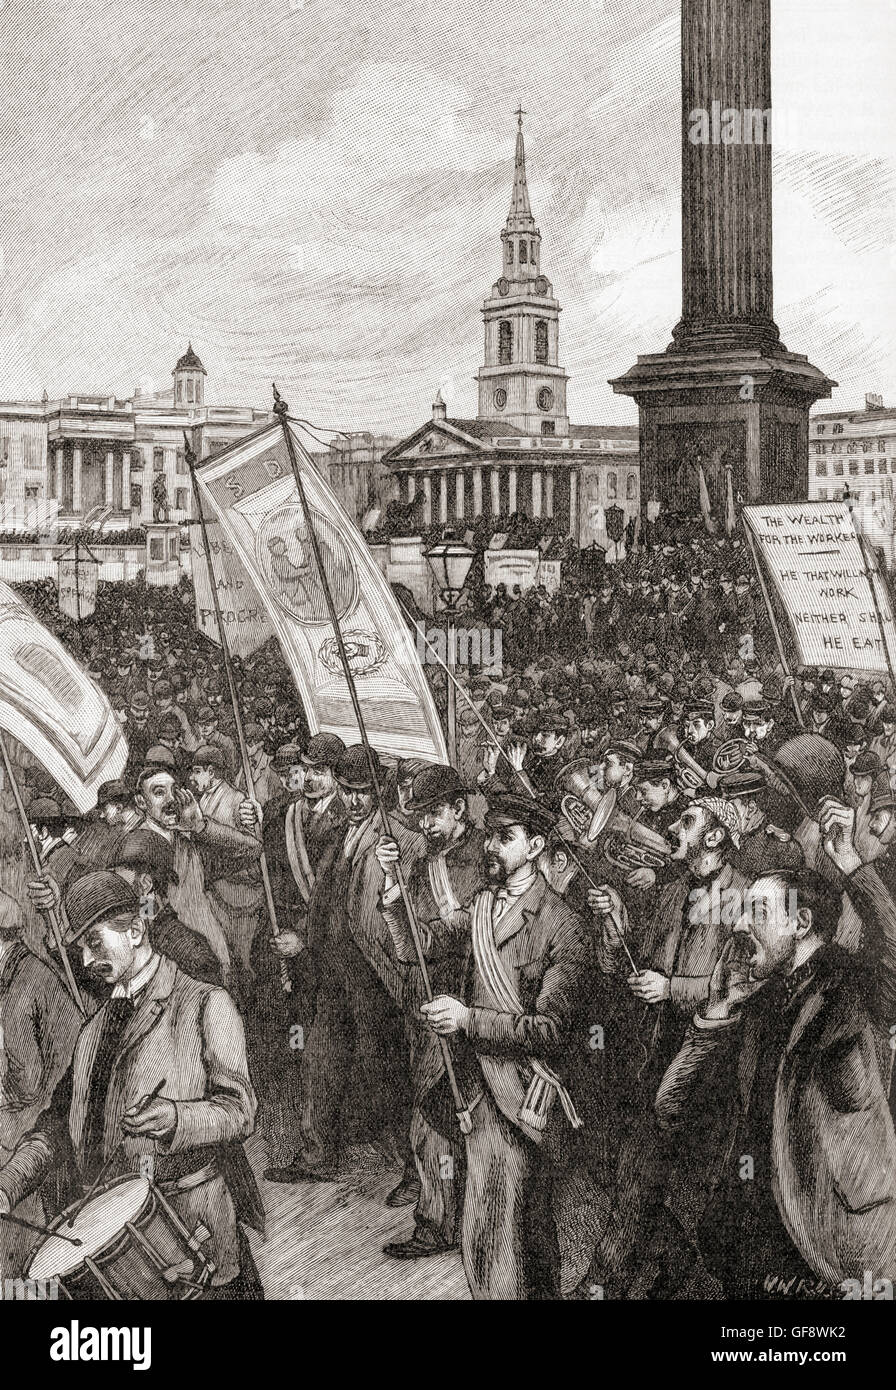 Public meeting in Trafalgar Square, London in 1892 commemorating the anniversary of Bloody Sunday in 1887, when - Stock Image